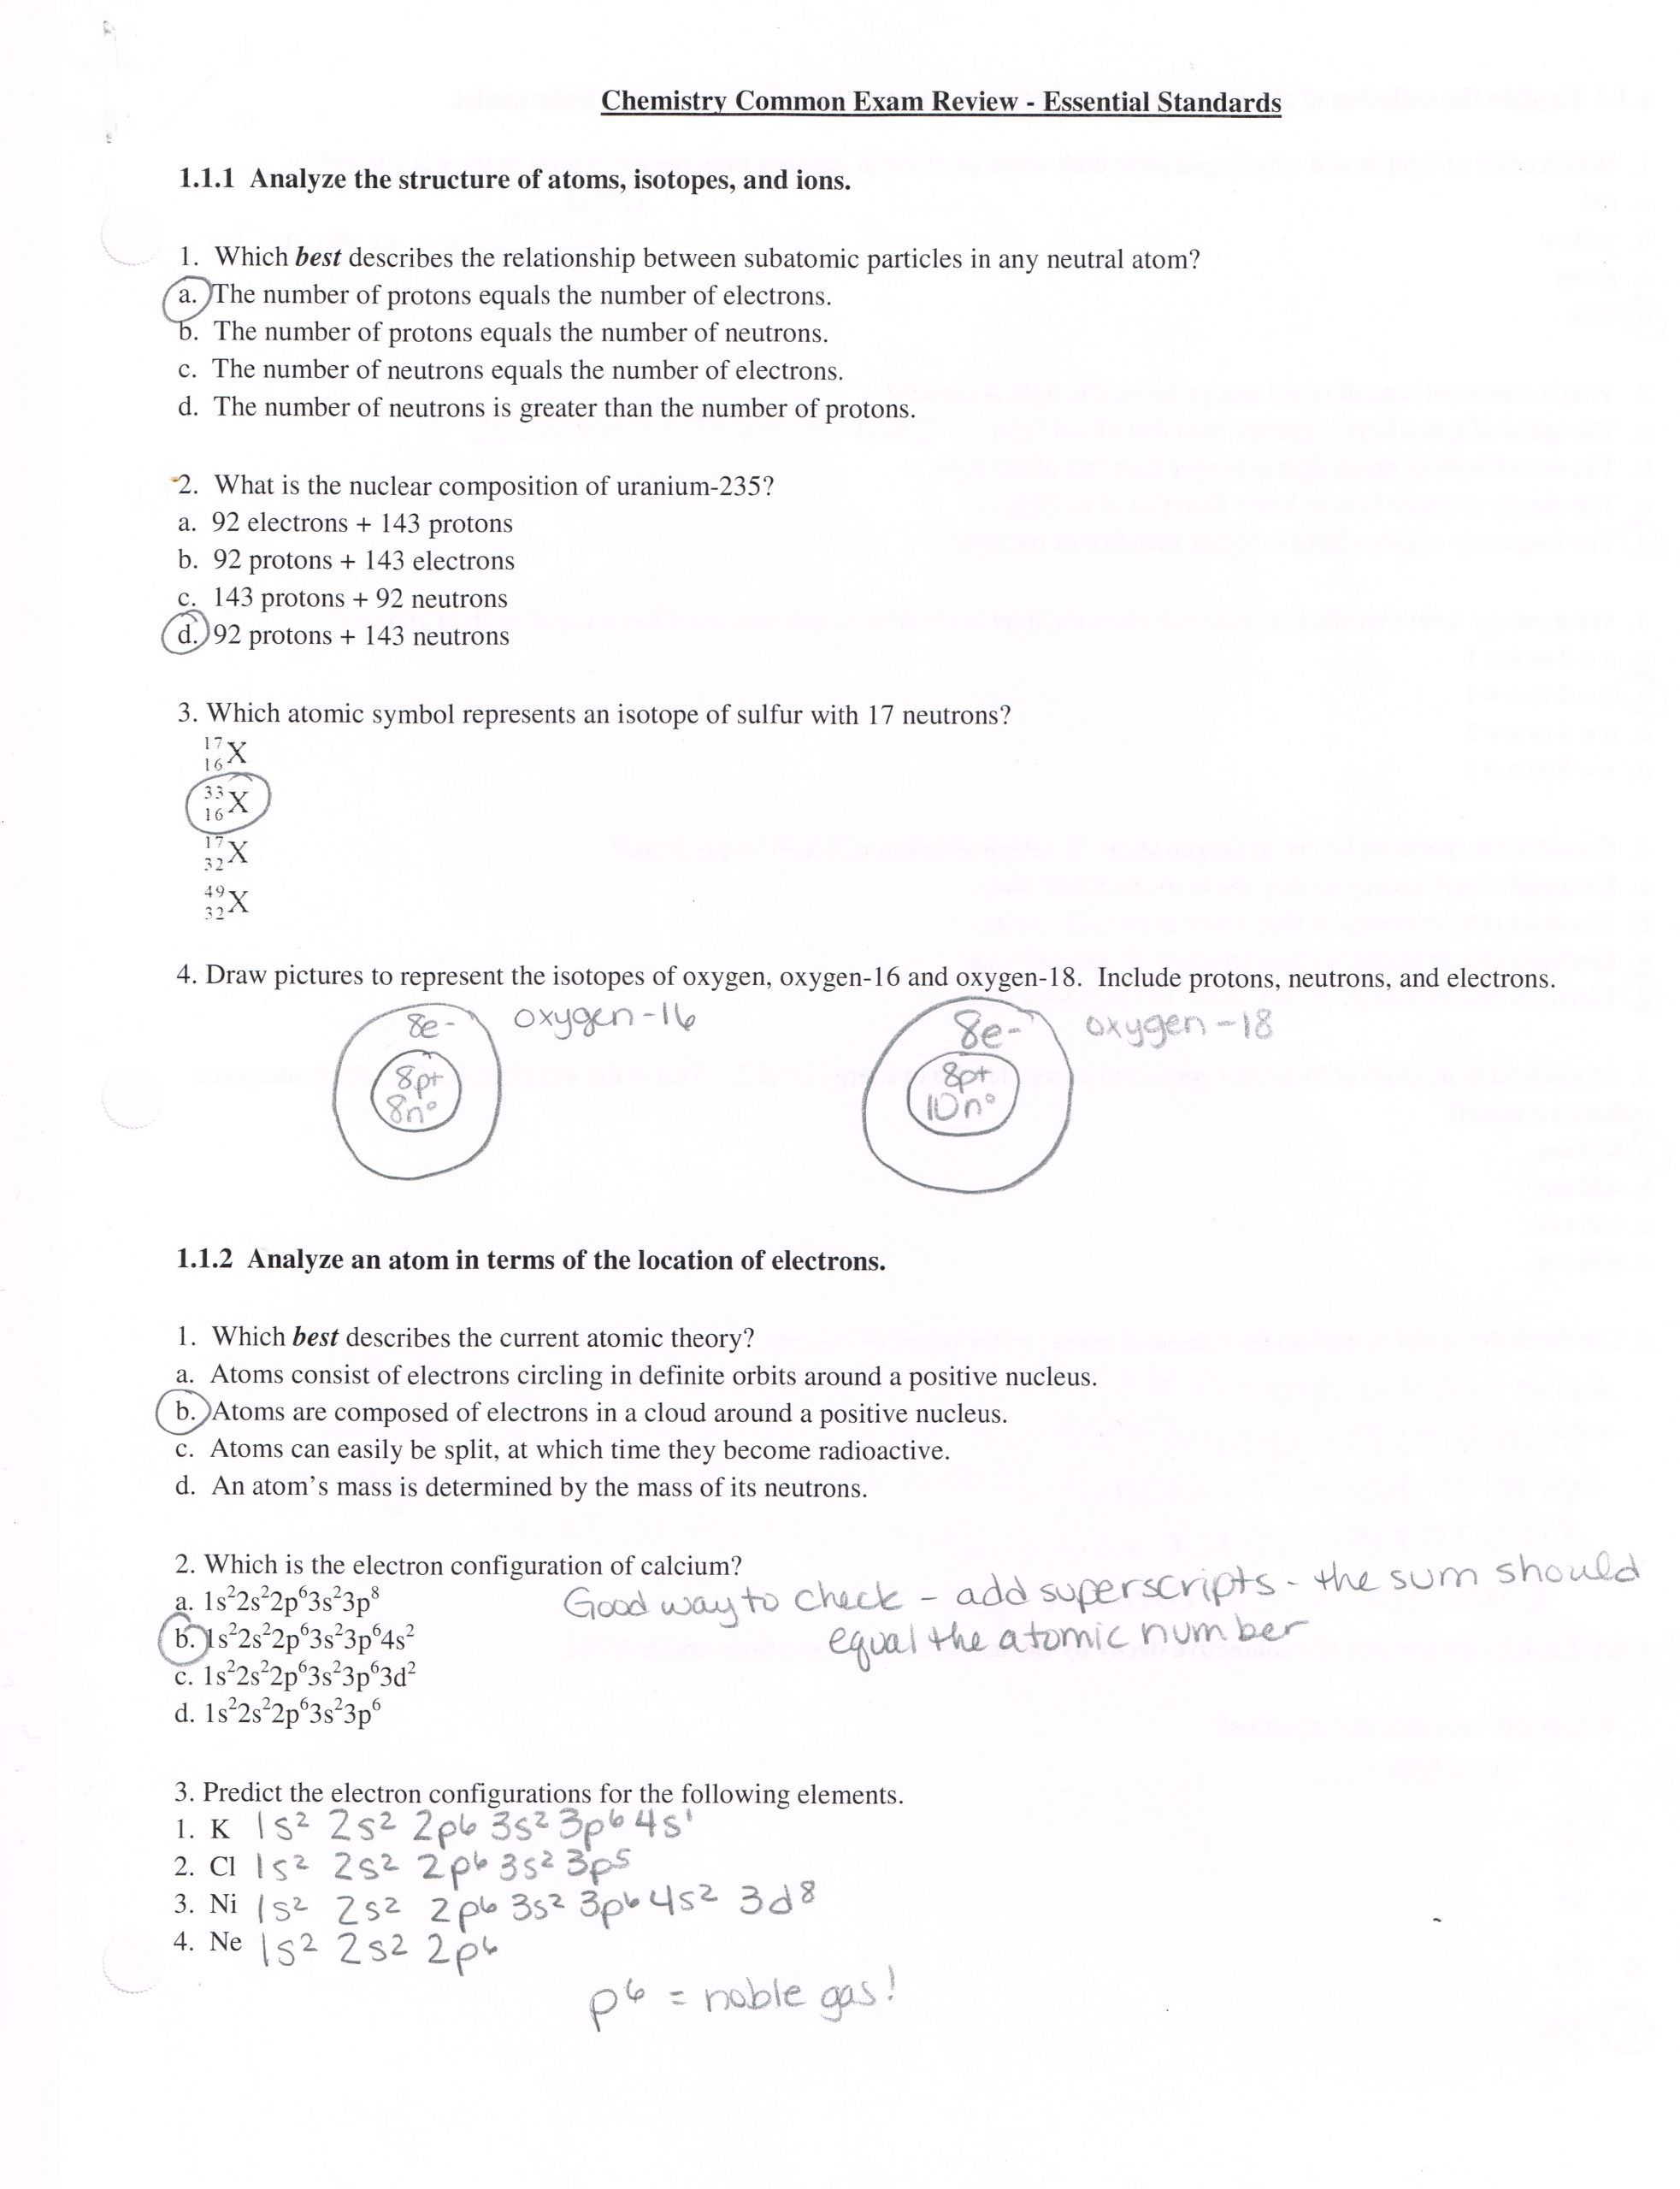 Electron Configuration Practice Worksheet Answers